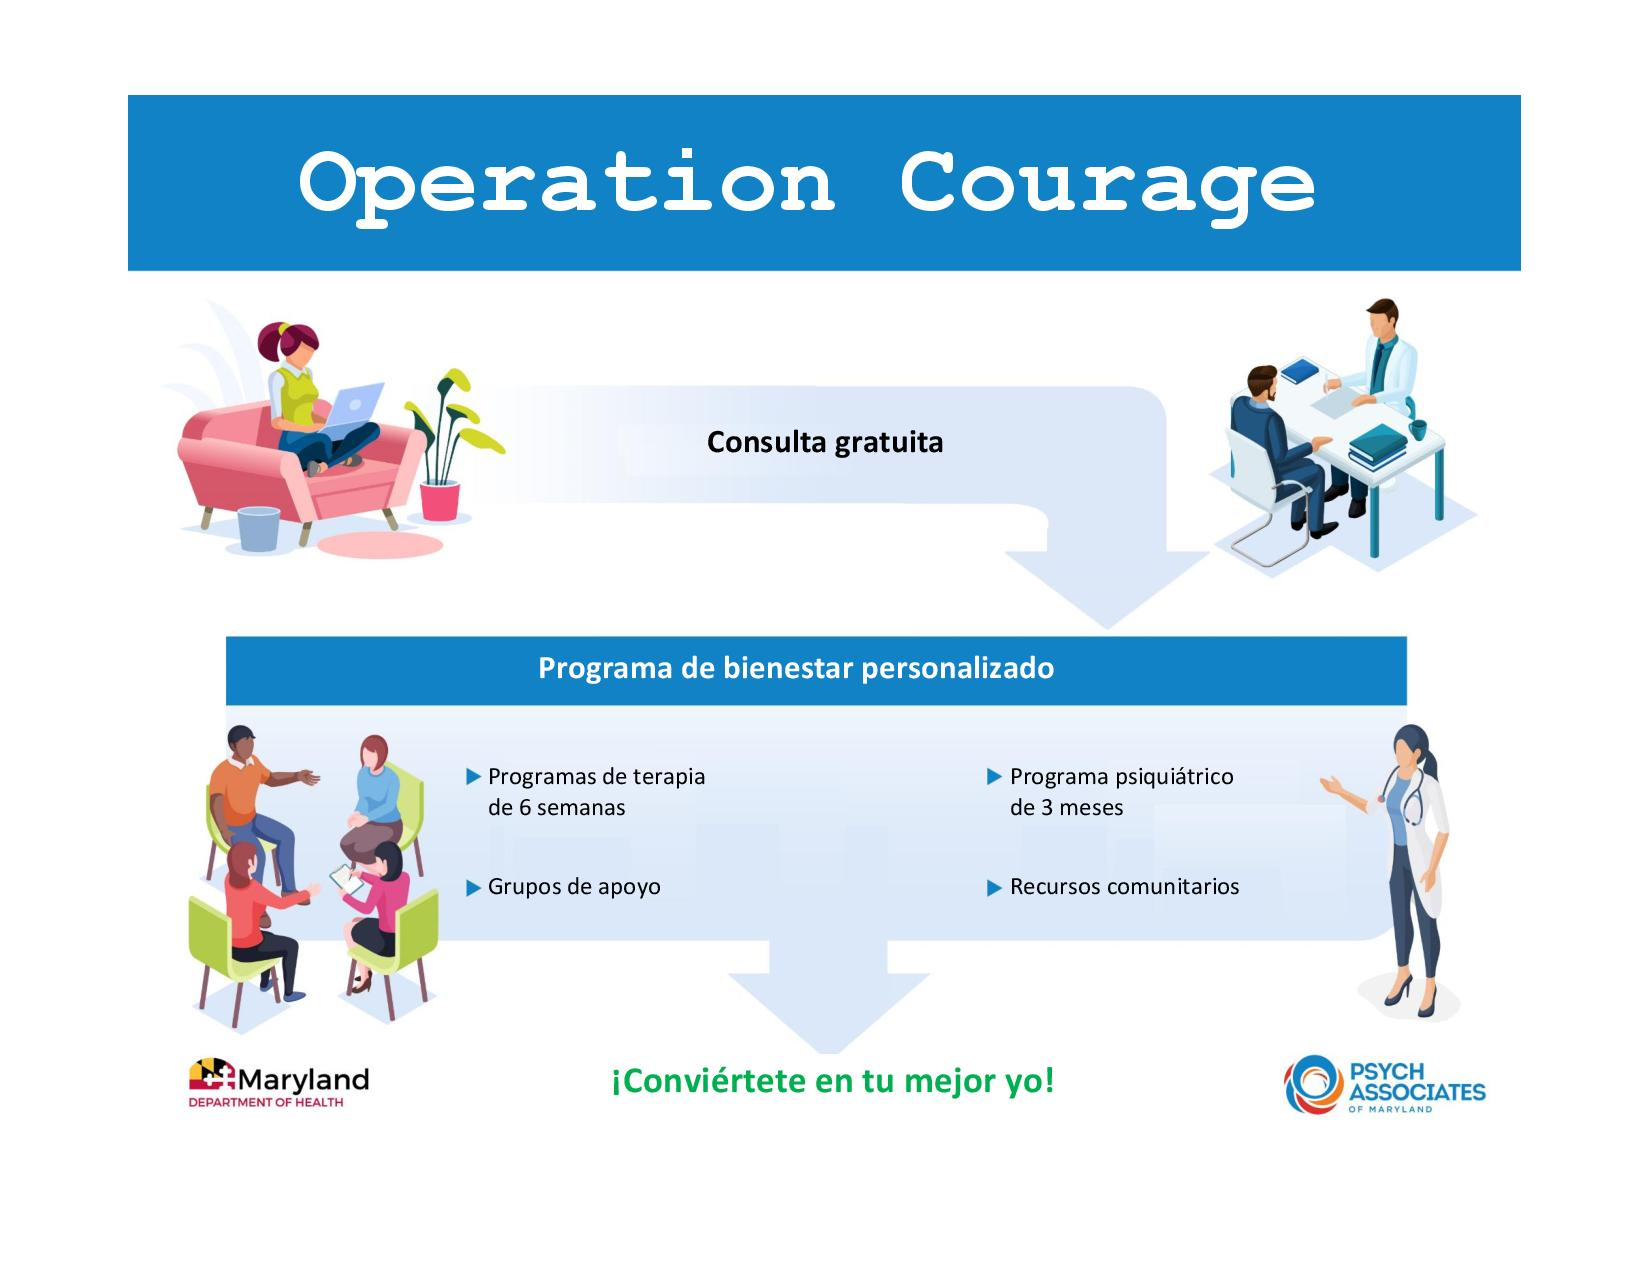 The Operation Courage Process